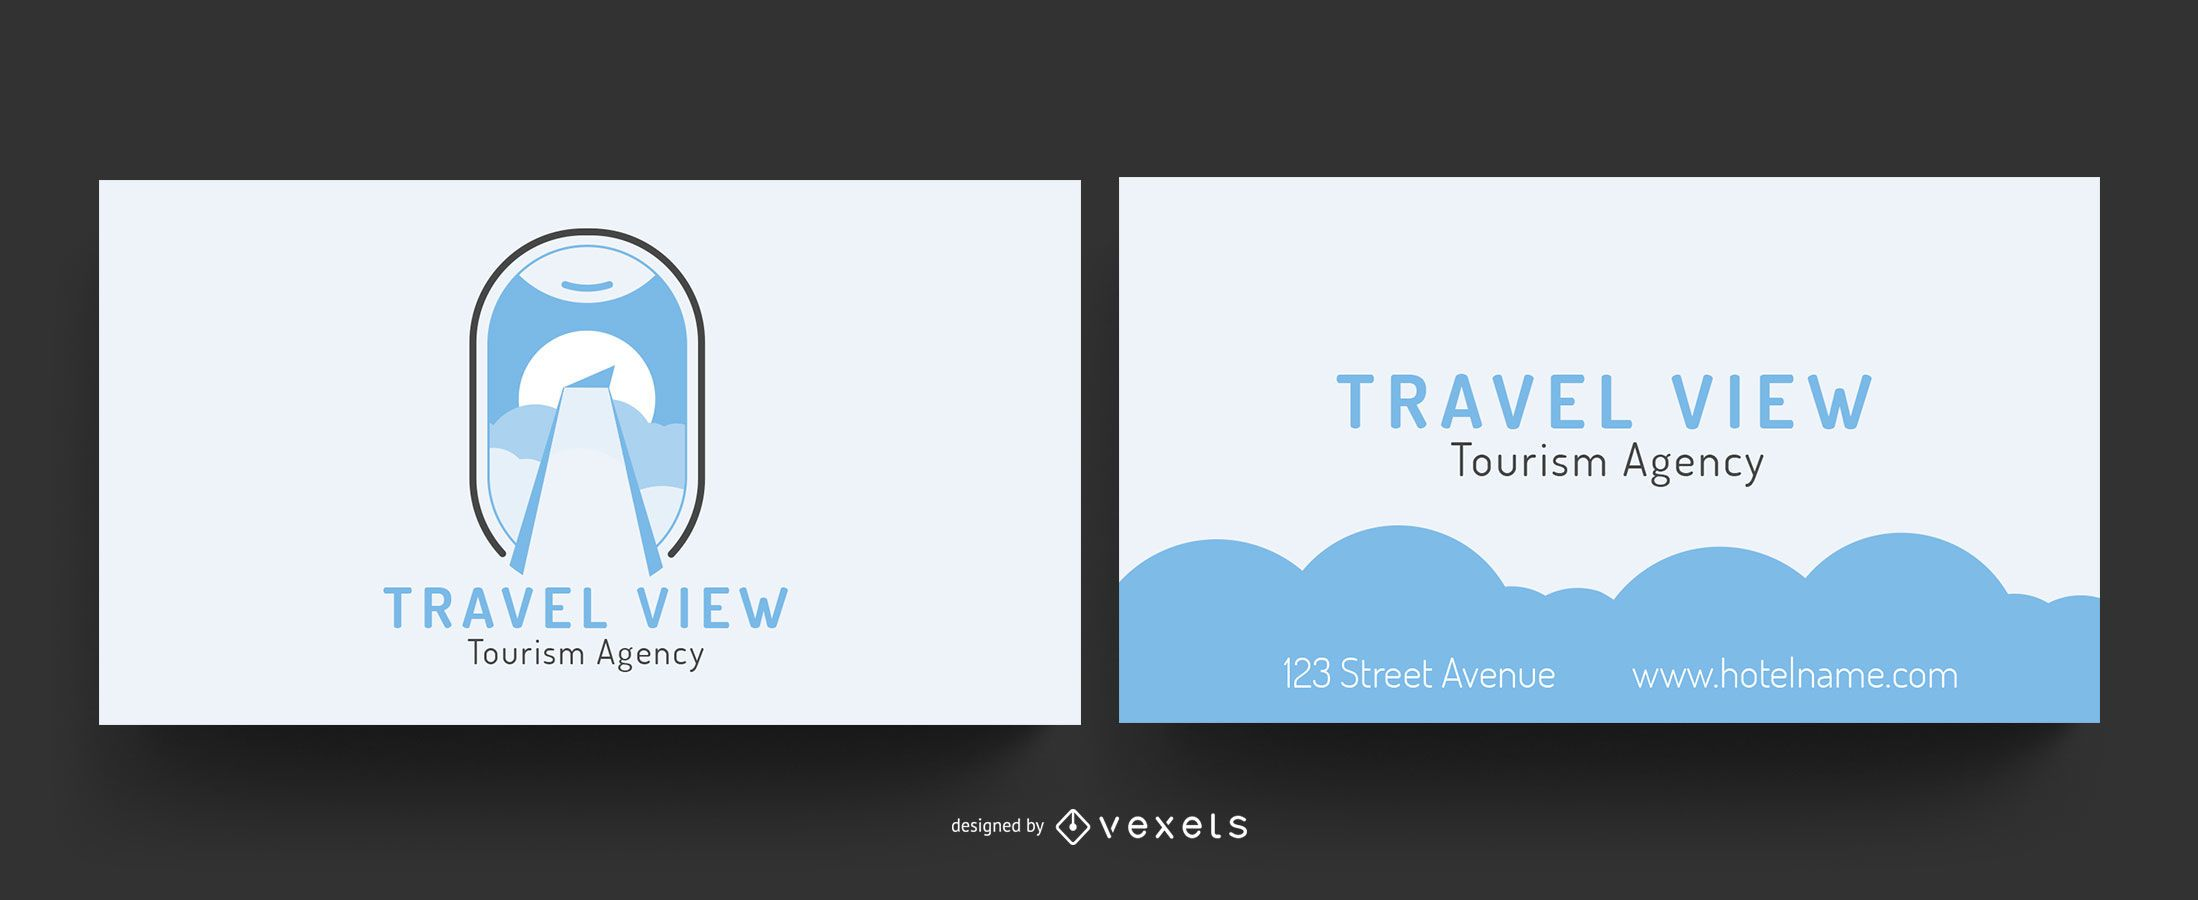 Travel view business card